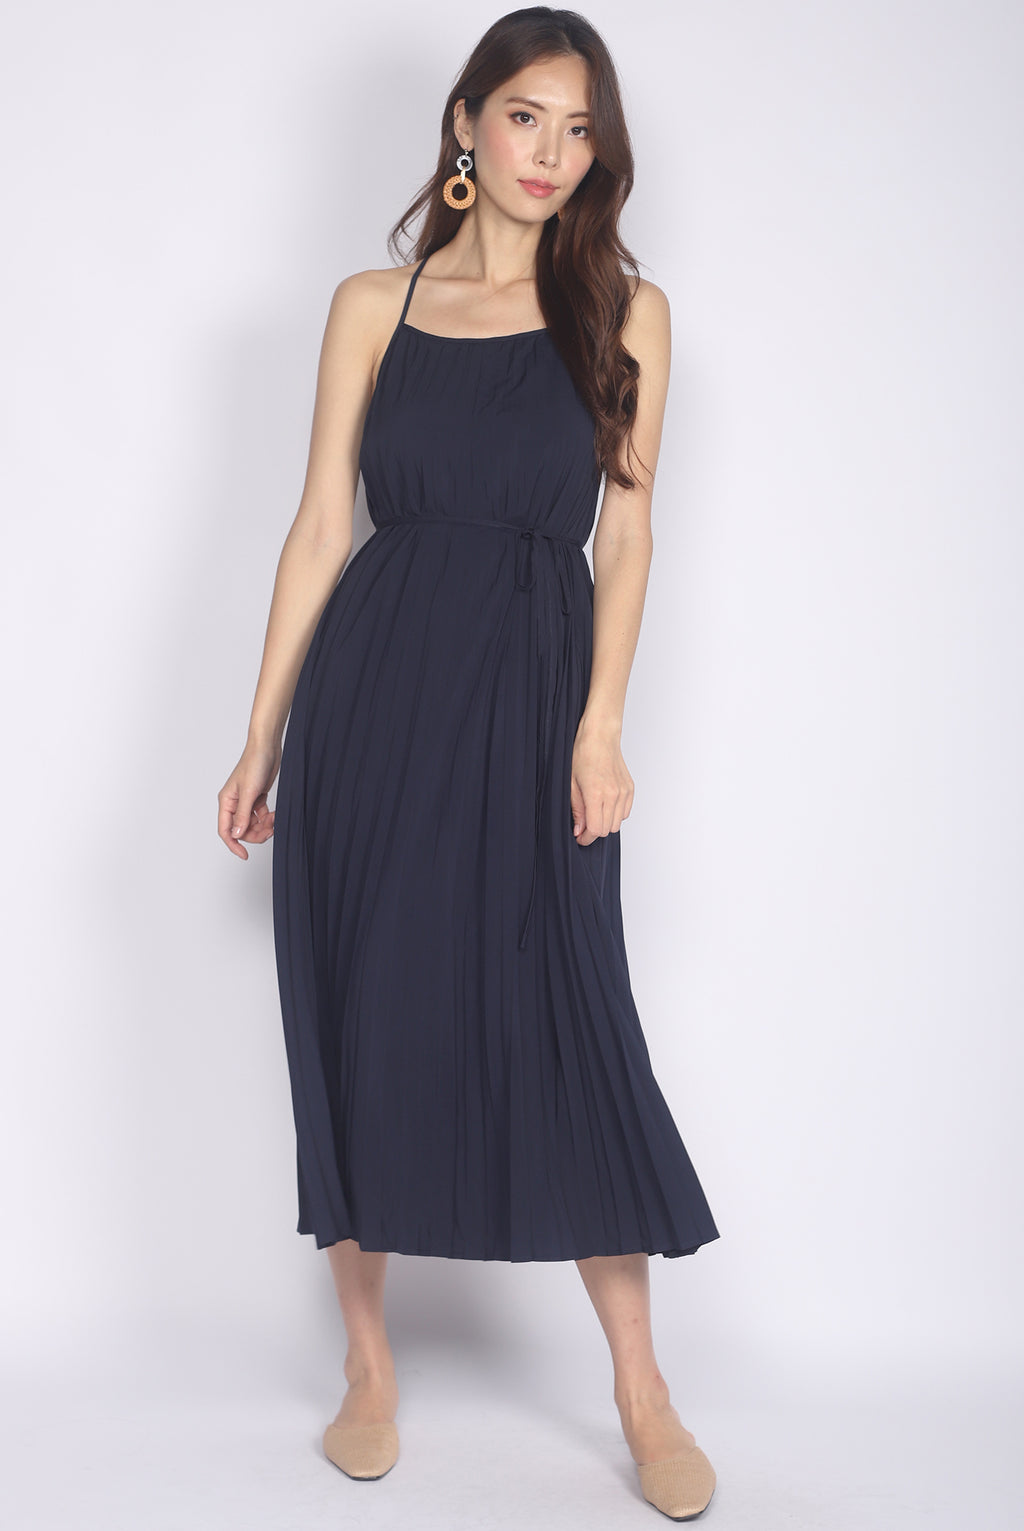 *Restocked* Bowie Pleated 2 Ways Dress In Navy Blue